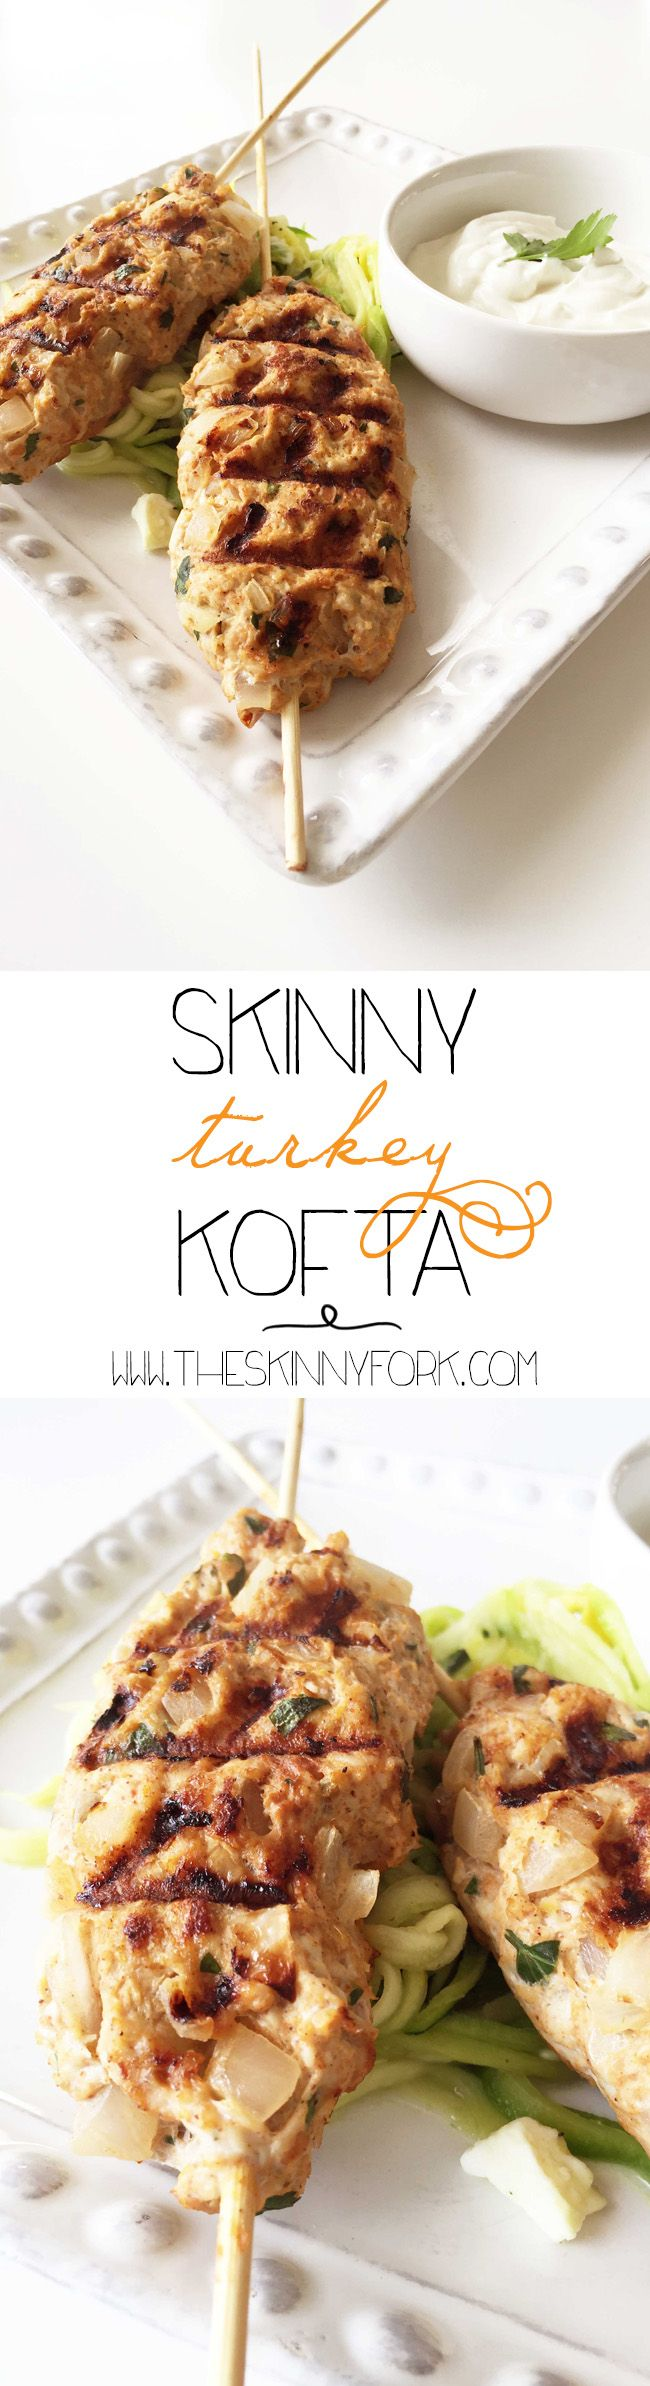 Skinny Turkey Kofta - Ground turkey, spices, lemon and onions cooked and served with a lemon tahini dip! Great for grilling too. TheSkinnyFork.com